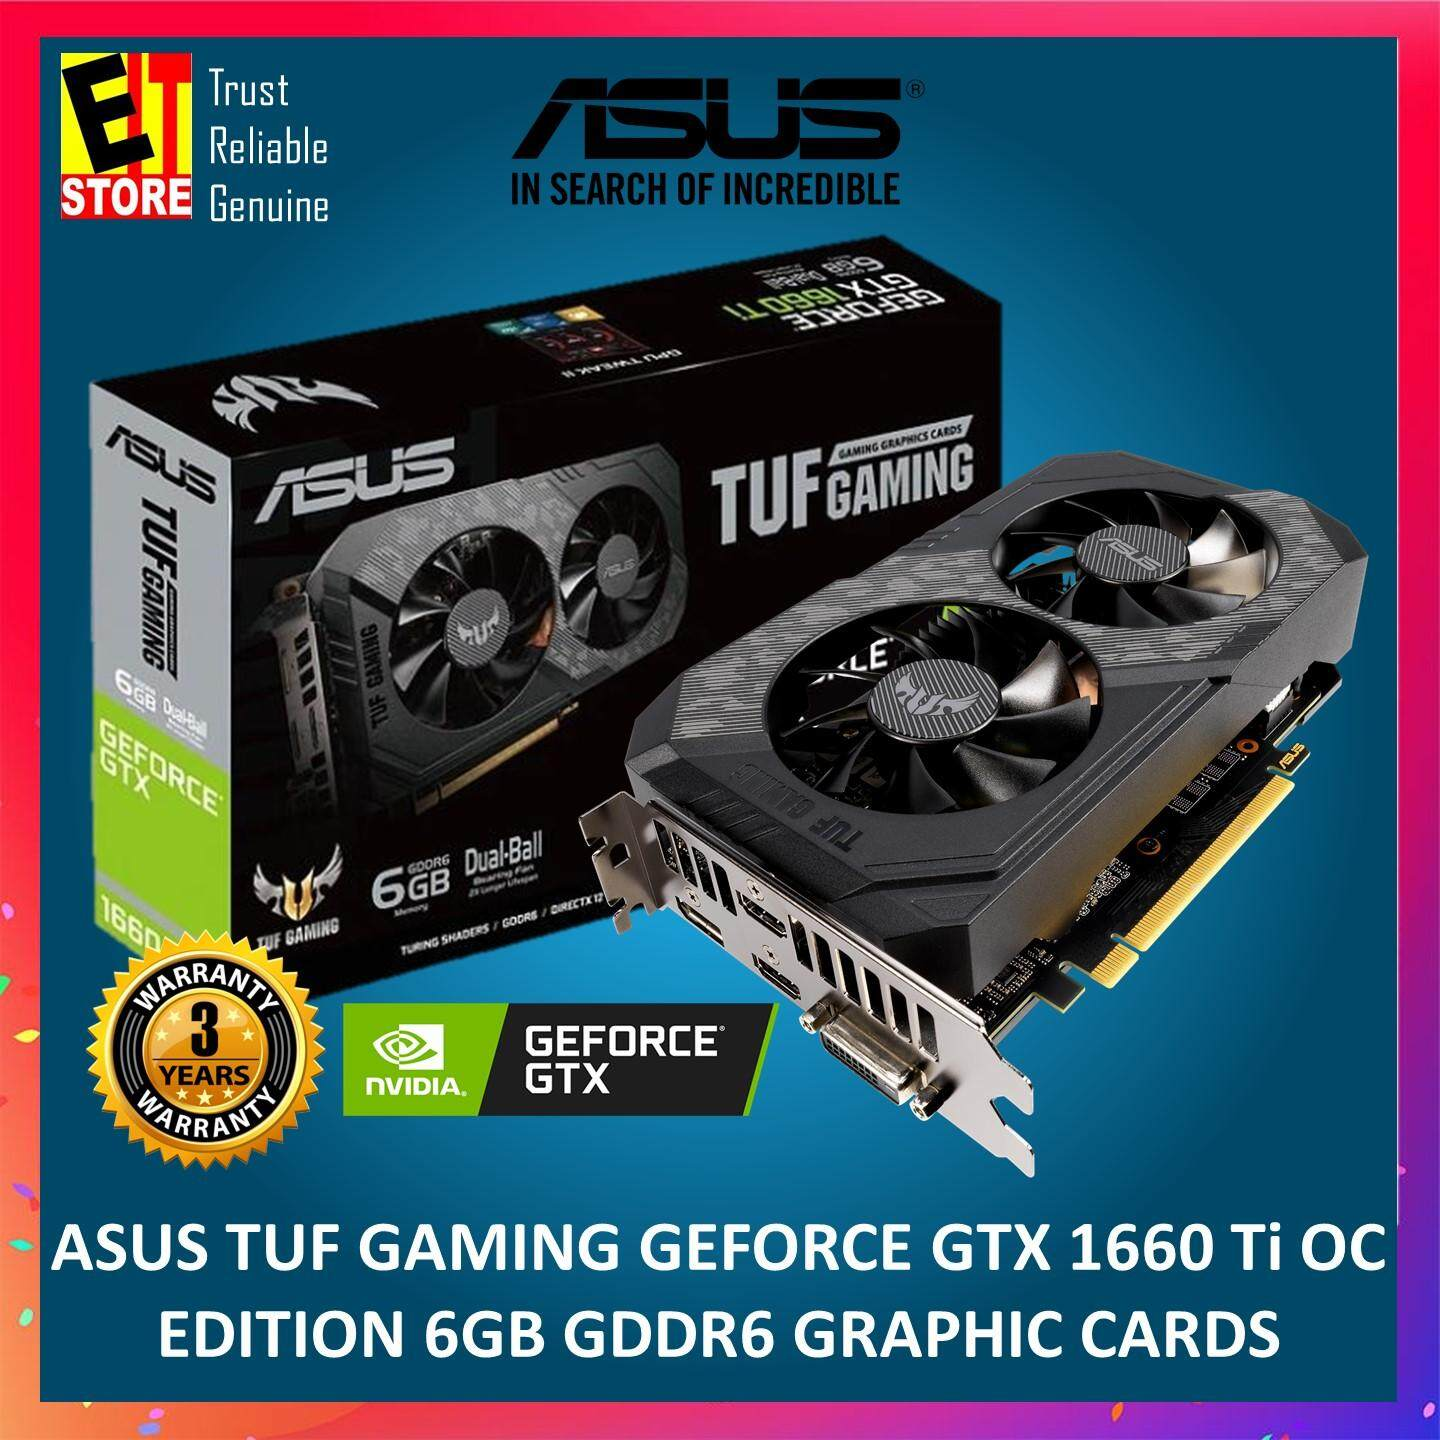 ASUS TUF GAMING GEFORCEGTX 1660 Ti OC EDITION 6GB GDDR6 GRAPHIC CARDS (TUF-GTX1660TI-O6G-GAMING)